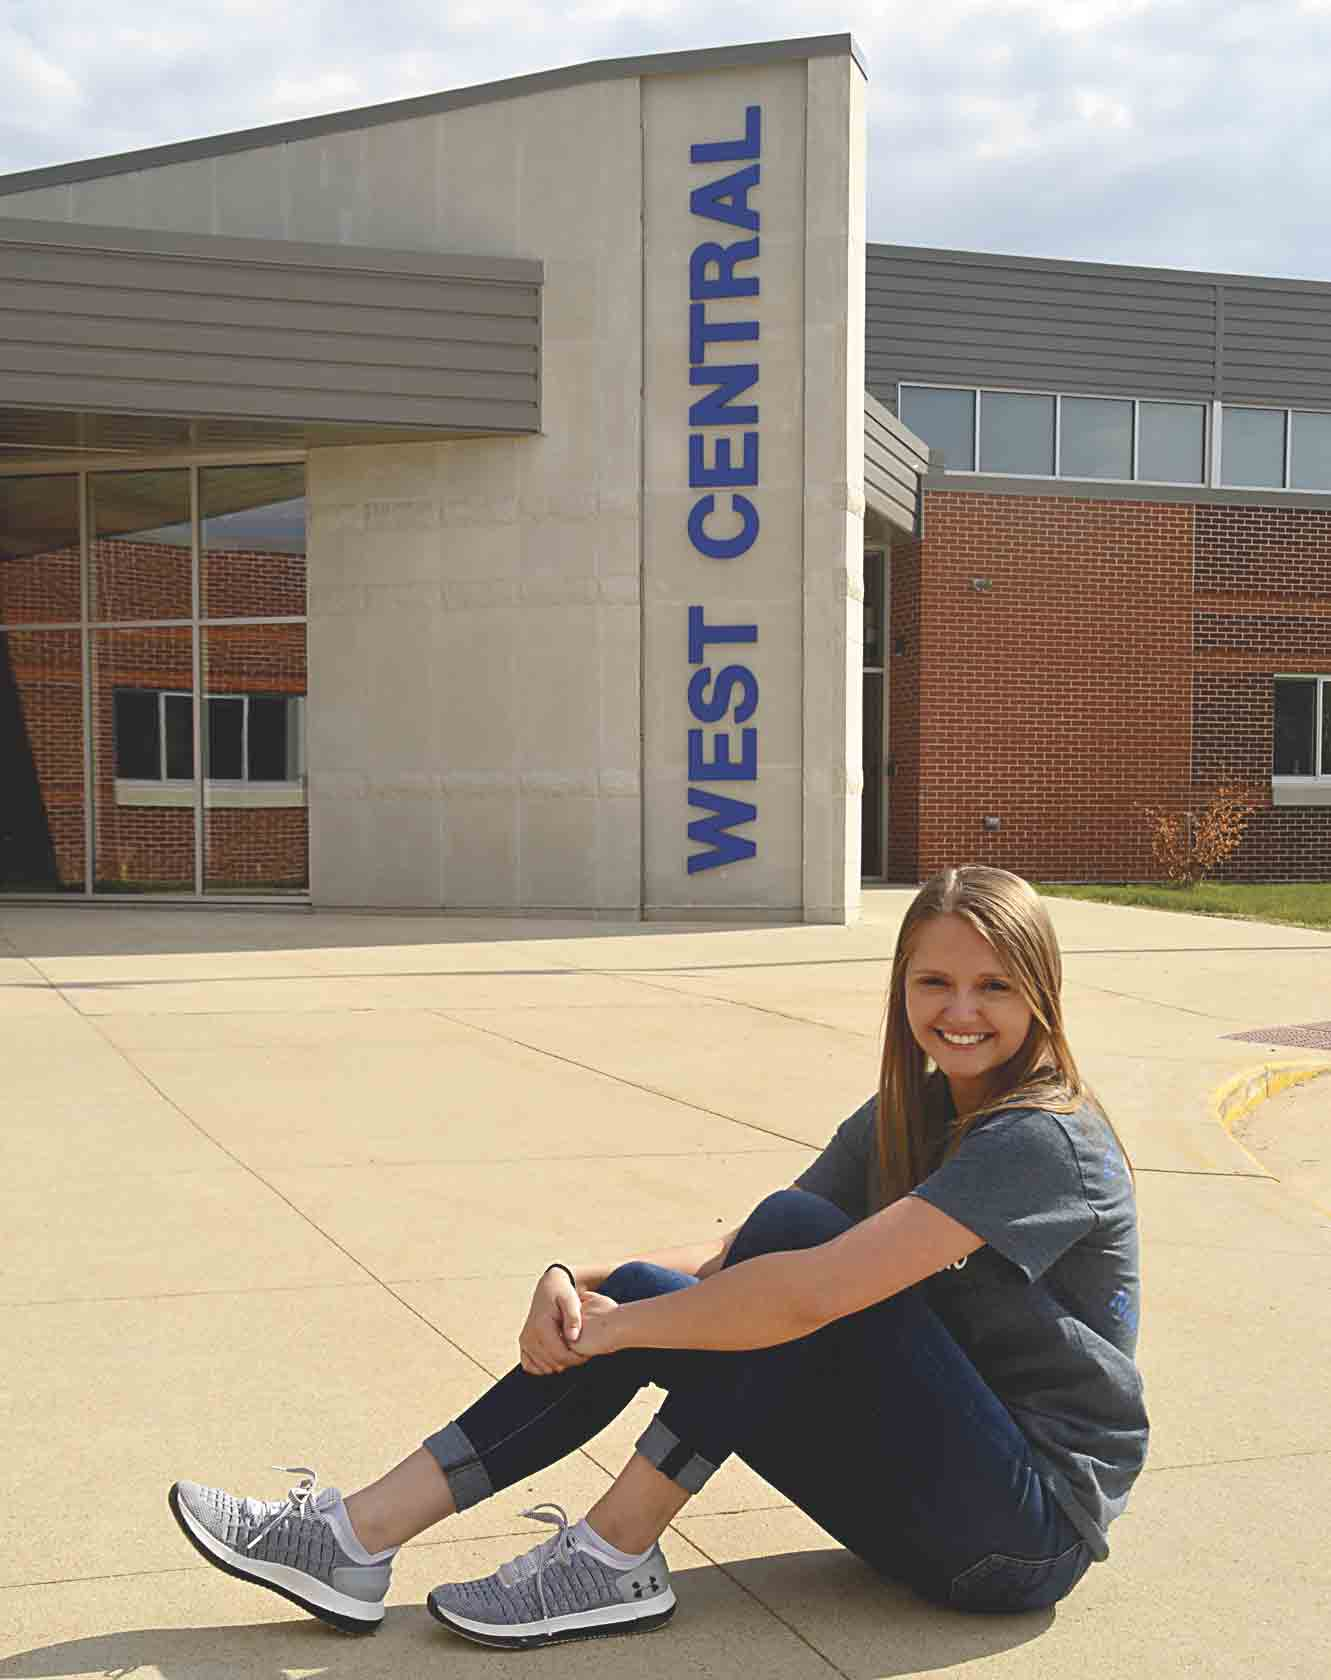 Hailey Weidemann is set to graduate from West Central High School, with 22 of her other classmates, at 7 p.m. Friday, May 24, in the WC High School gym in Maynard.Weidemann to earn a mortuary science degreeBy Chris Debackcdeback@thefayettecountyunion....